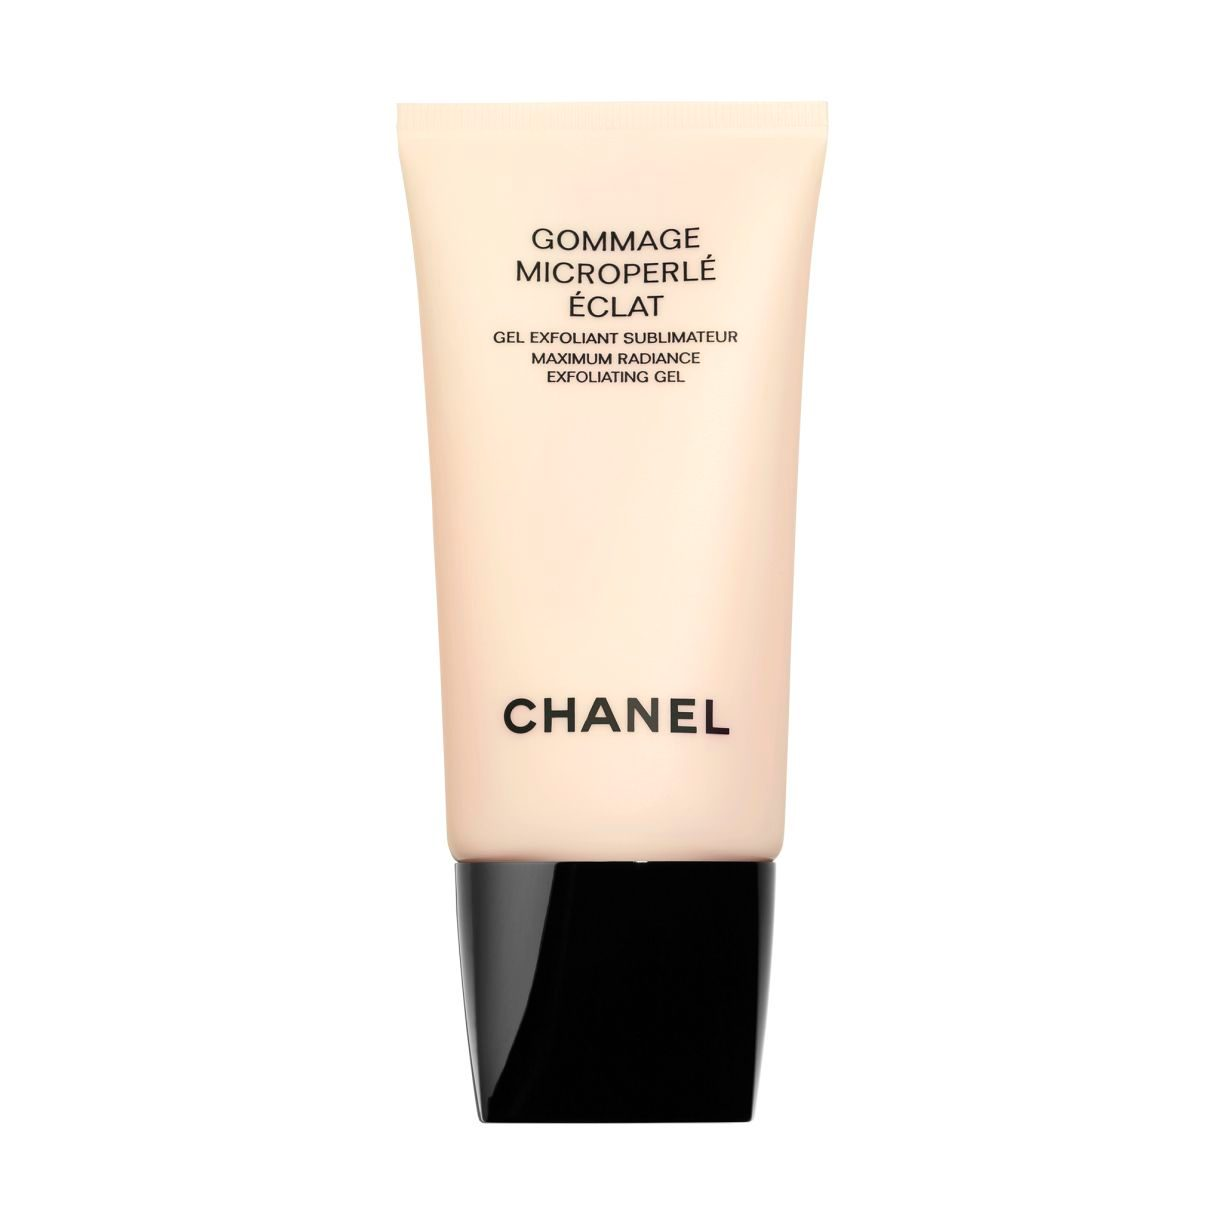 GOMMAGE MICROPERLÉ ÉCLAT GEL EXFOLIANTE LUMINOSO